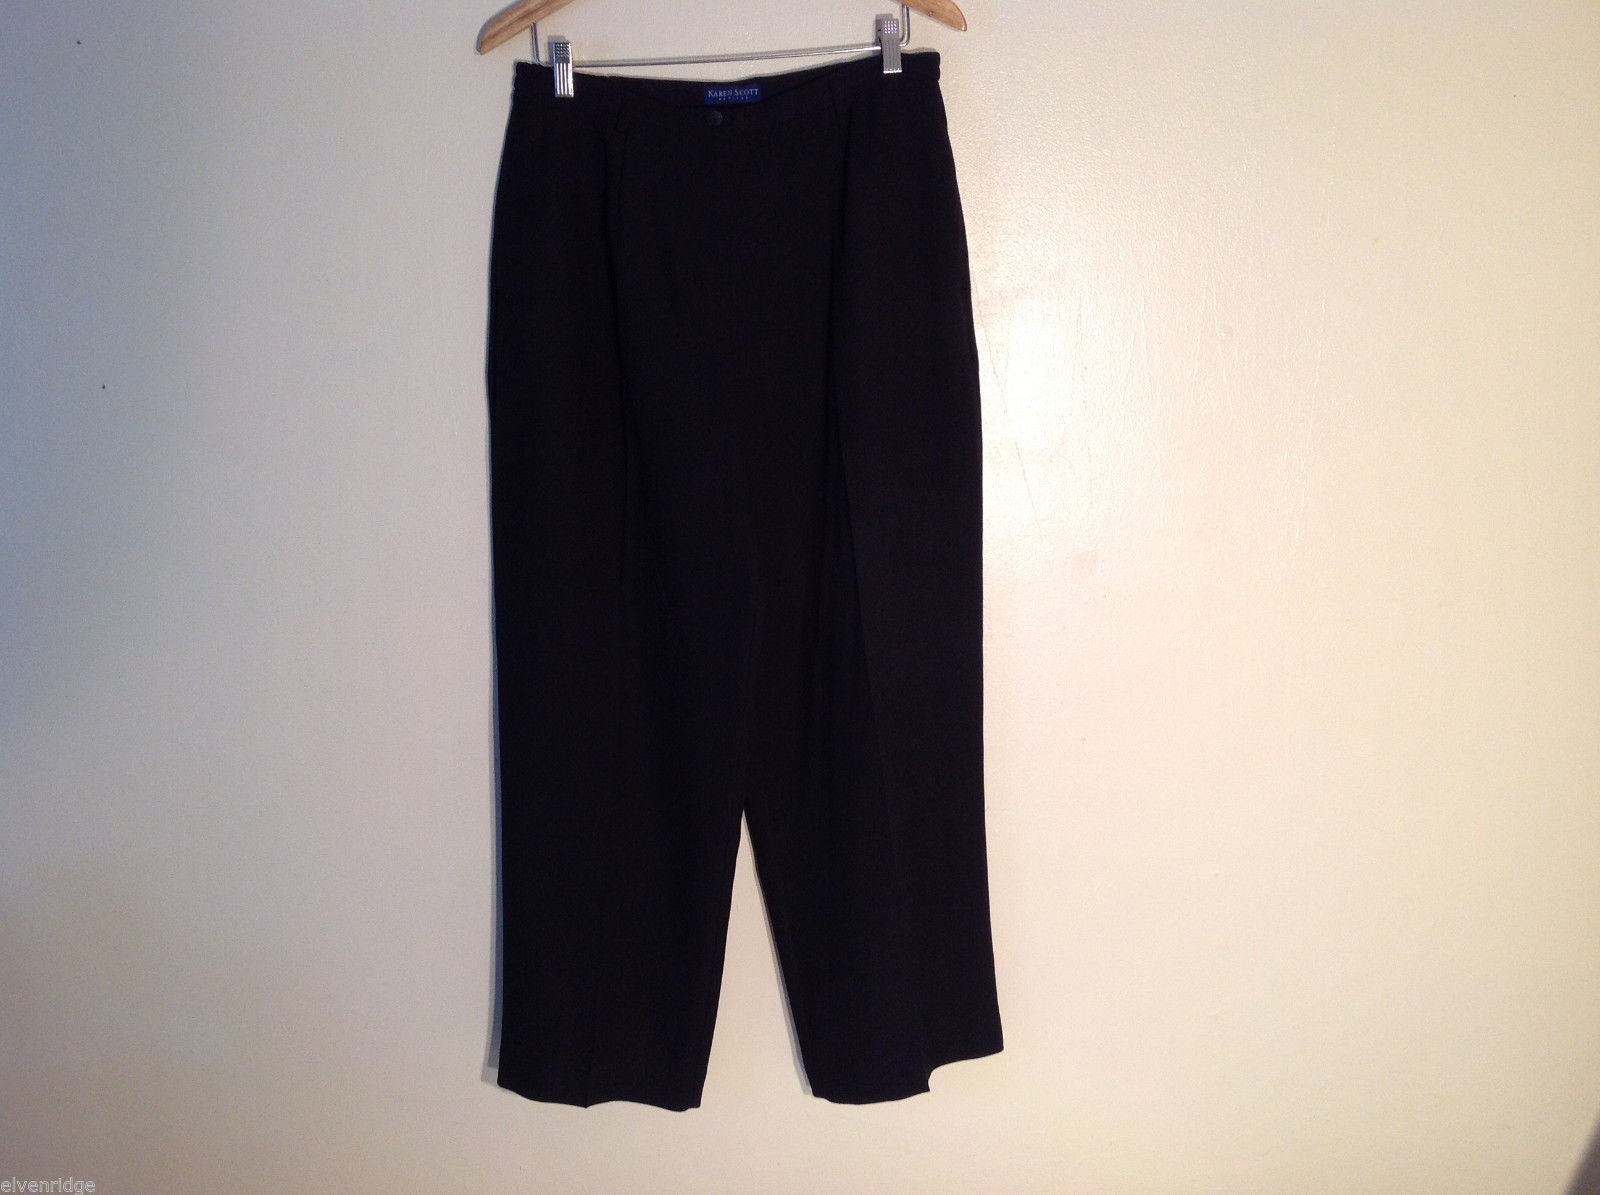 Karen Scott Women's Petite Size 14 14P Dress Pants Black Slacks Fully Lined